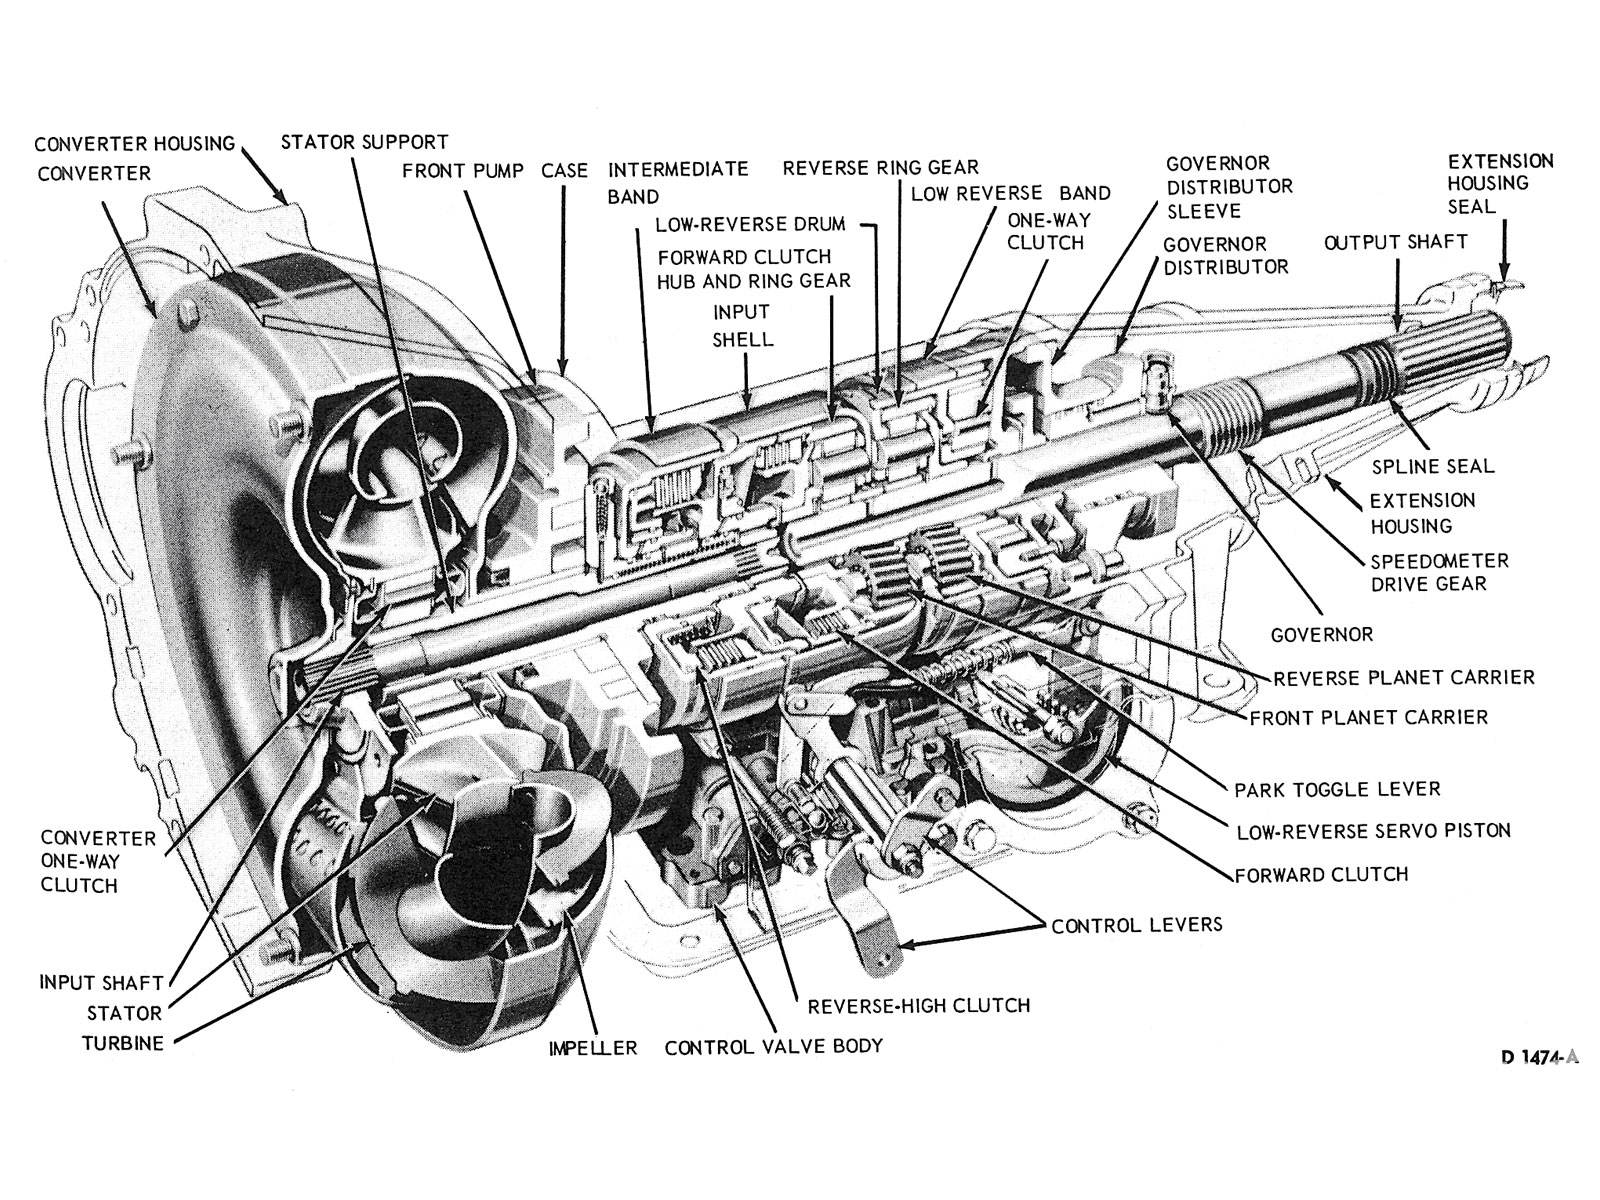 hight resolution of c4 c5 cutaway diagram